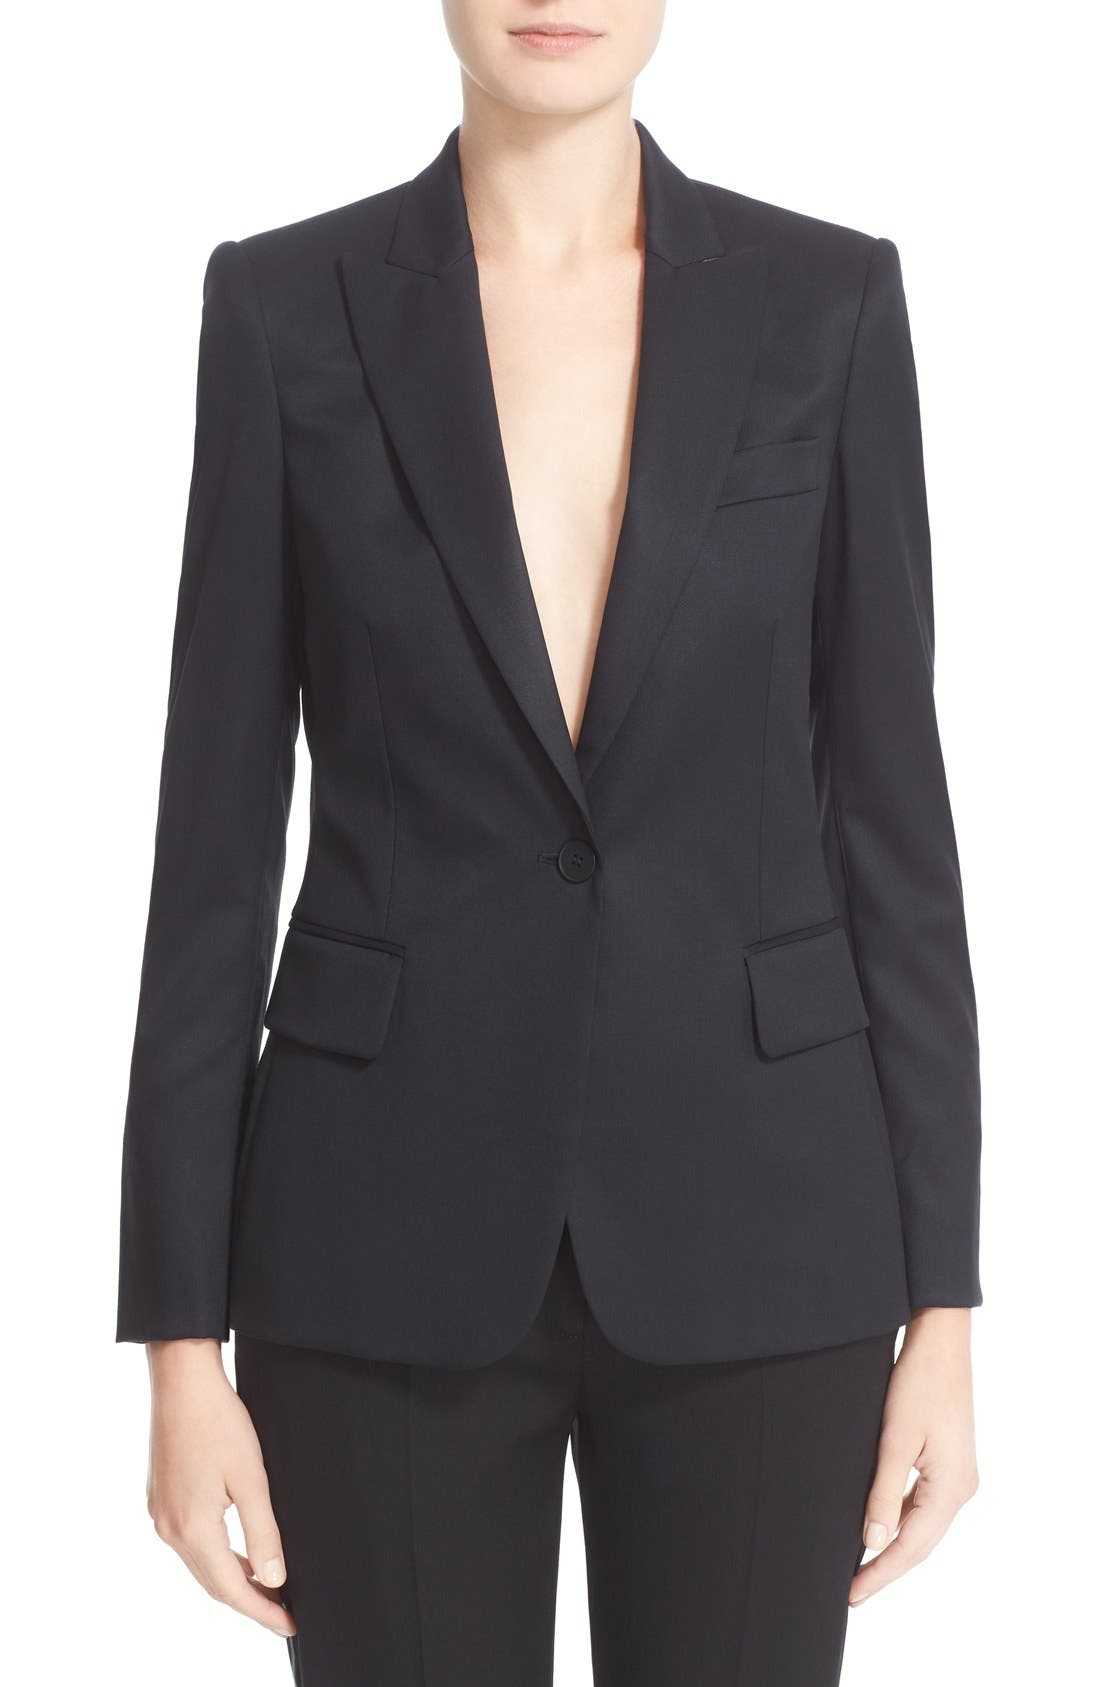 Alternate Image 1 Selected - Stella McCartney PS1 One-Button Wool Jacket (Nordstrom Exclusive)